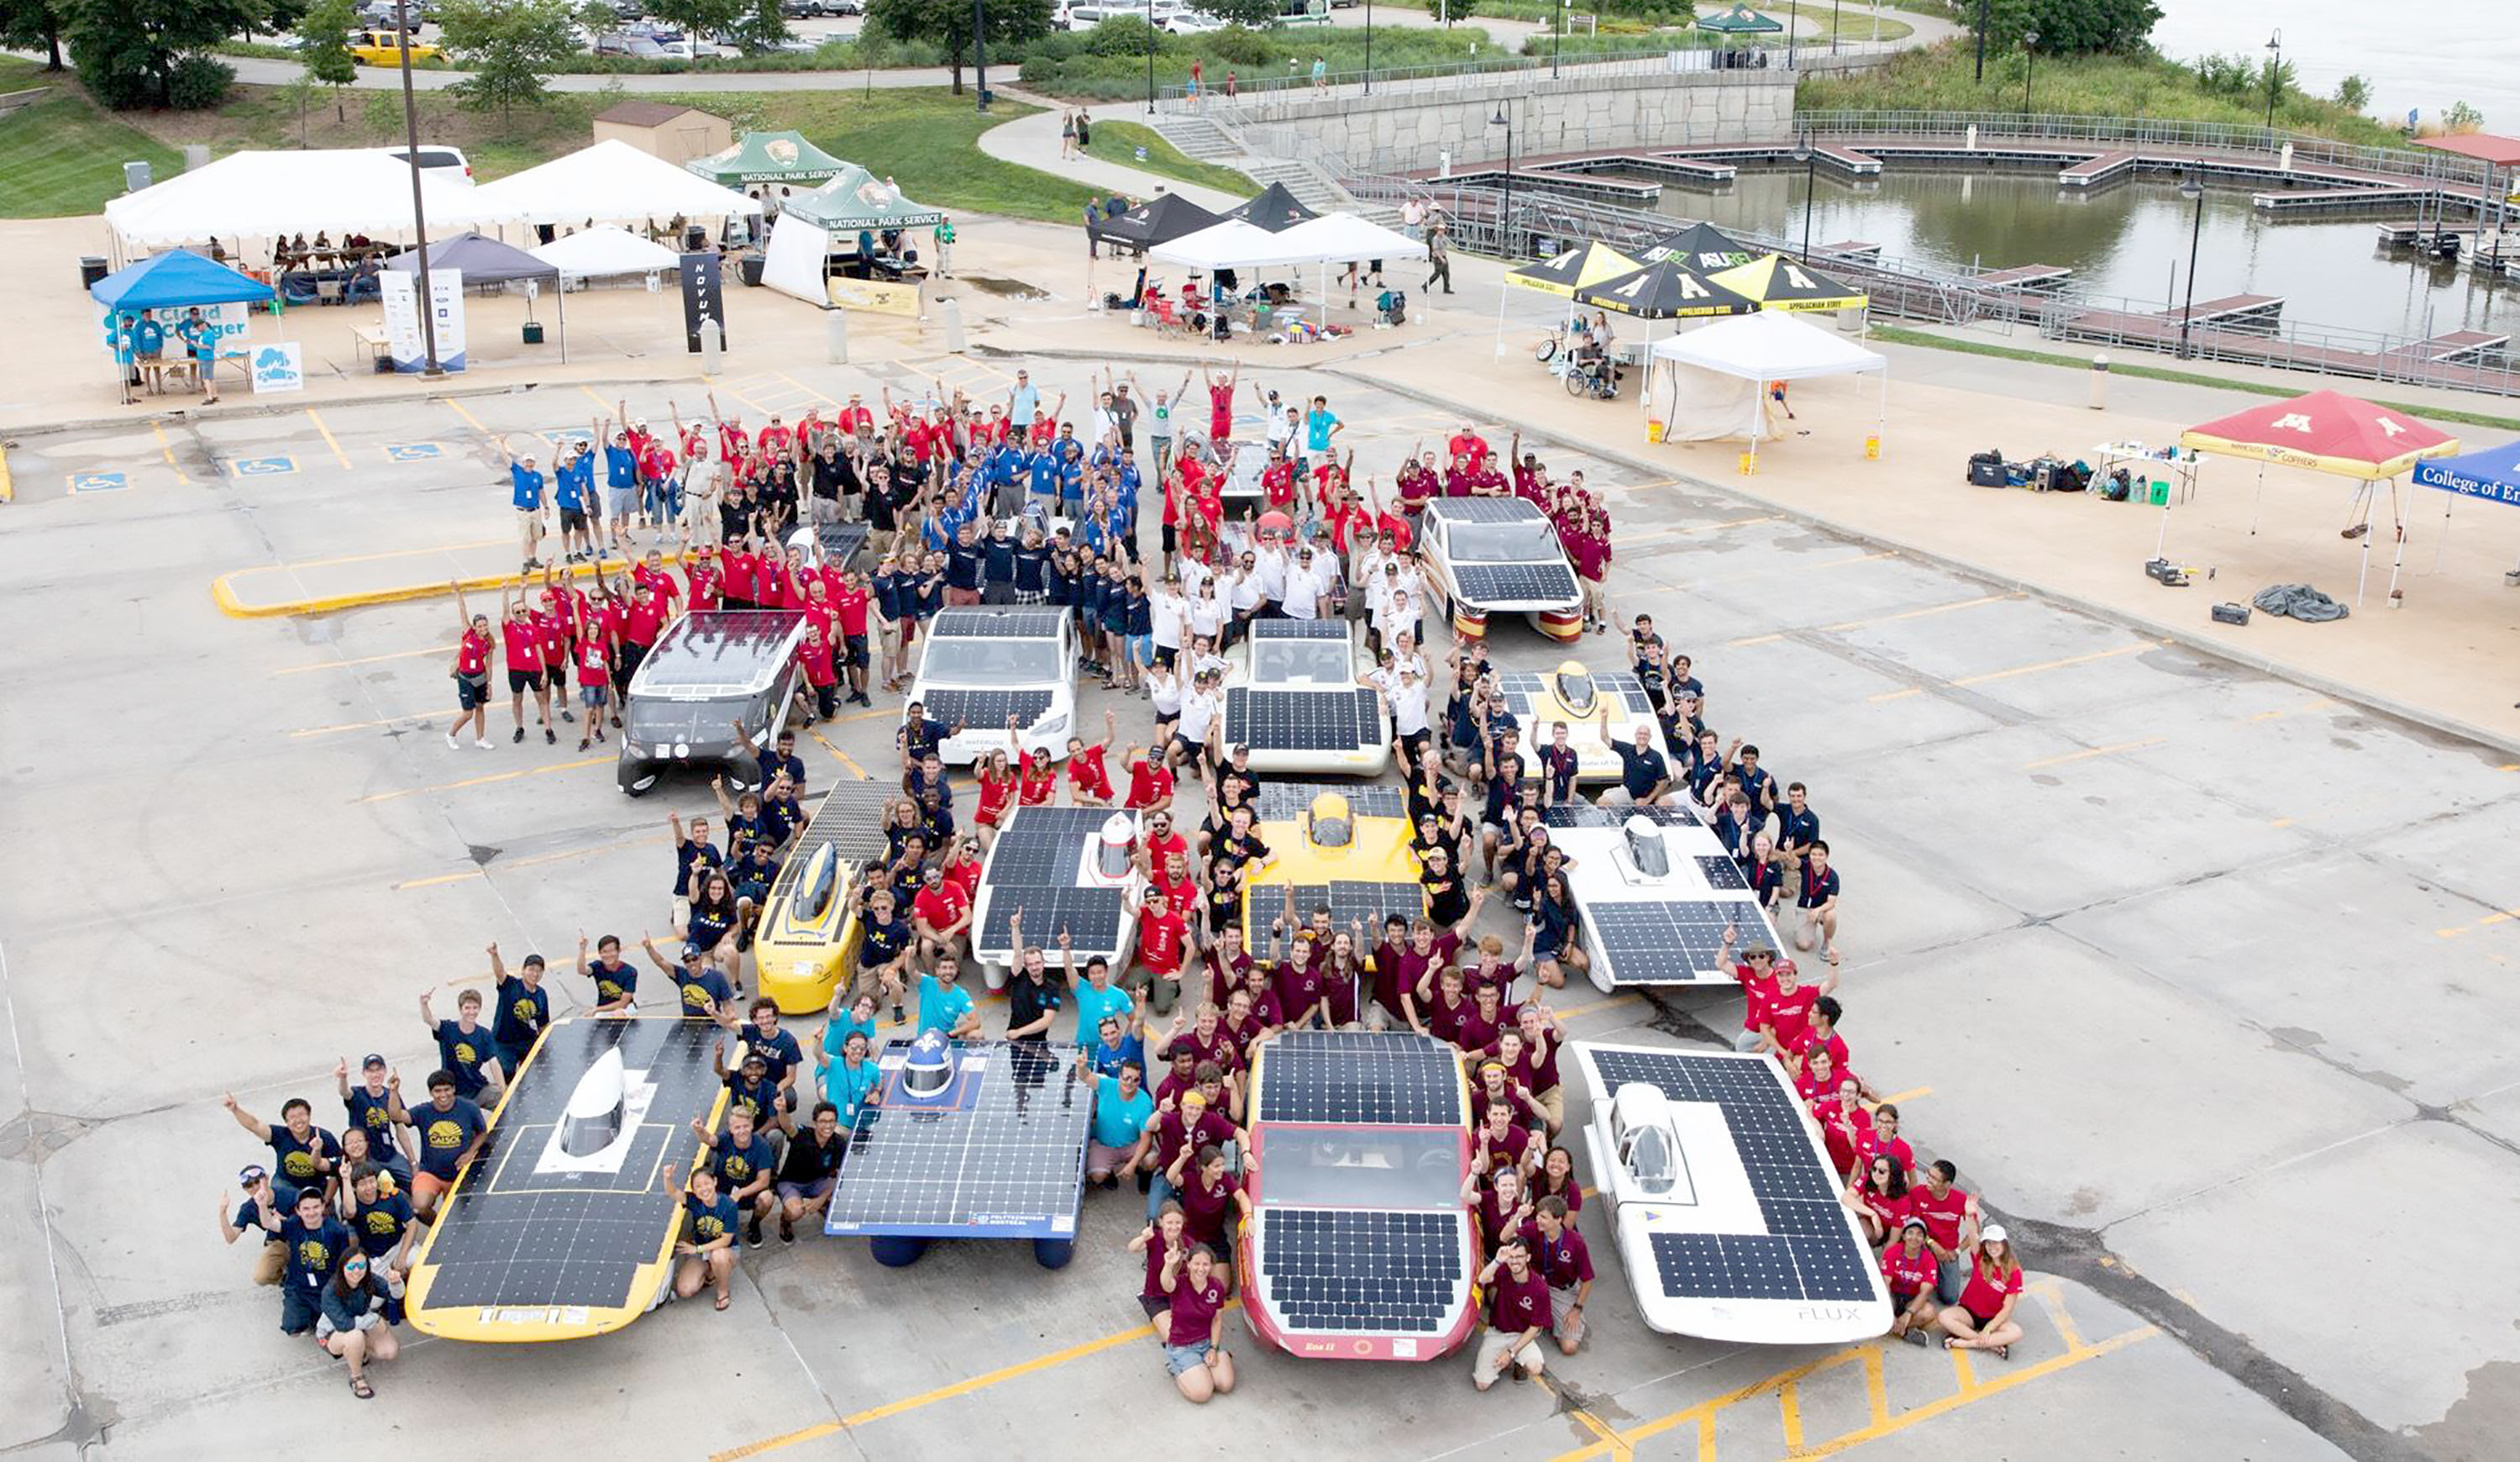 The American Solar Challenge 2018 Which Will P Through Burns Saay And Sunday July 21 22 Feature Collegiate Car Teams In A Road Rally